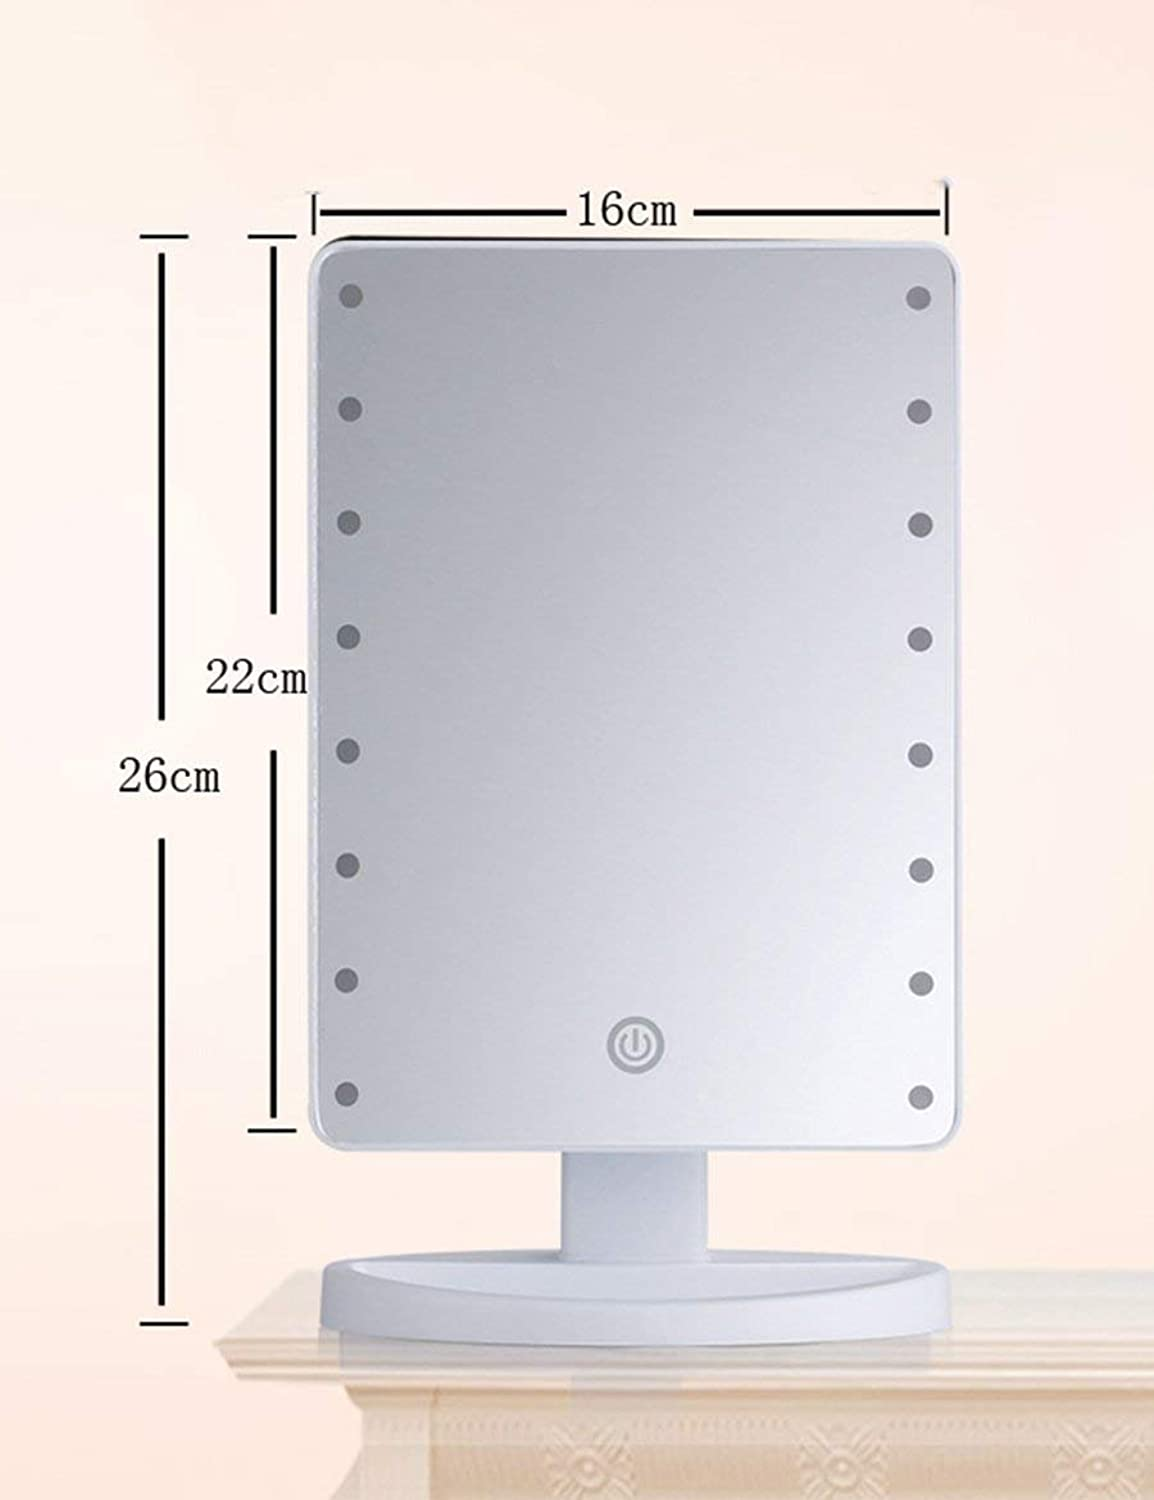 Portable Mini LED Mirror Cute Princess Square of Portable Office Mirror Mirror The Vanity with Mirror of The Light Suitable for Bedroom and Bathroom (1) color